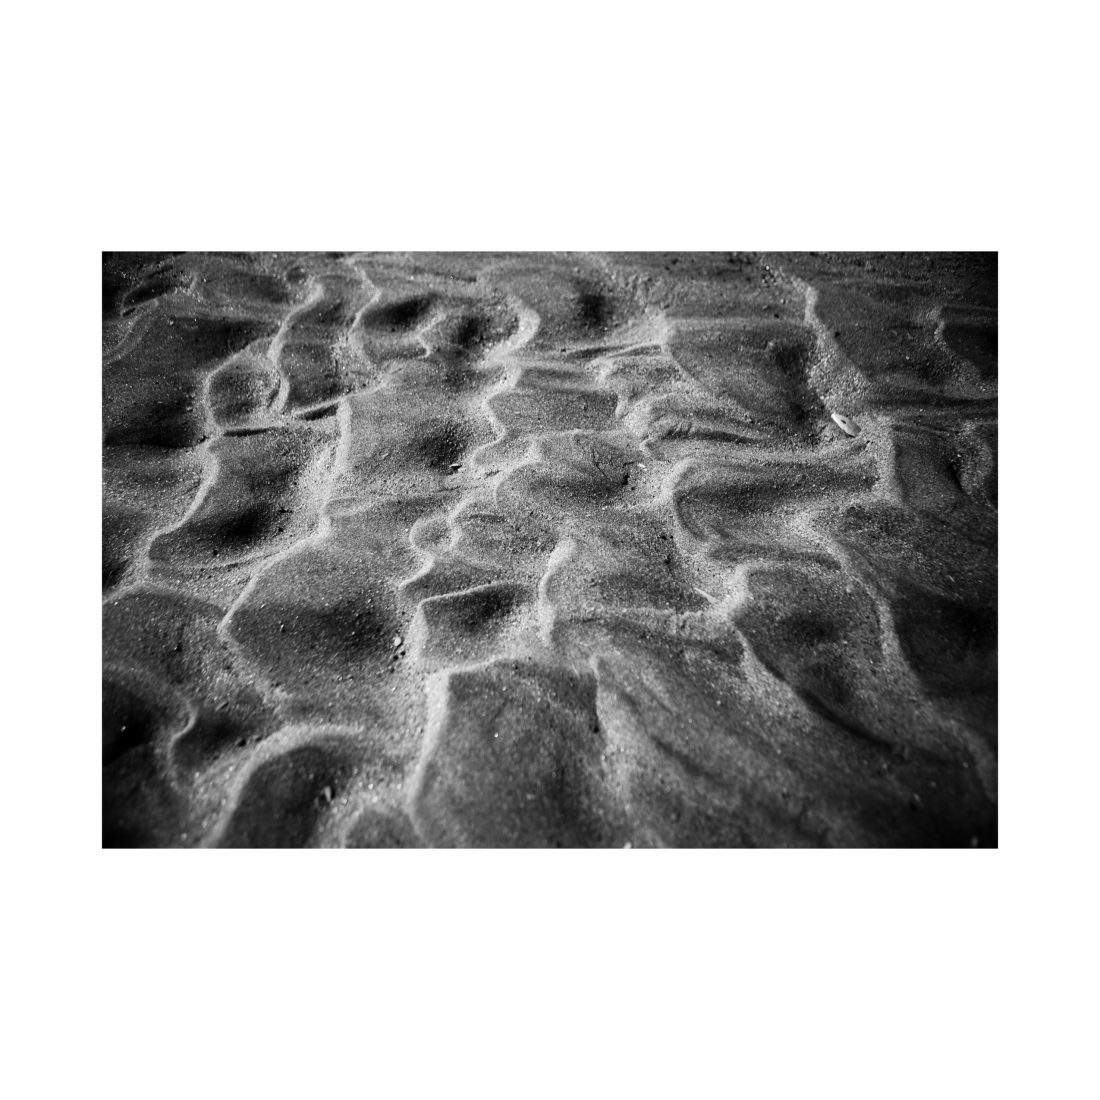 Shapes on the sand